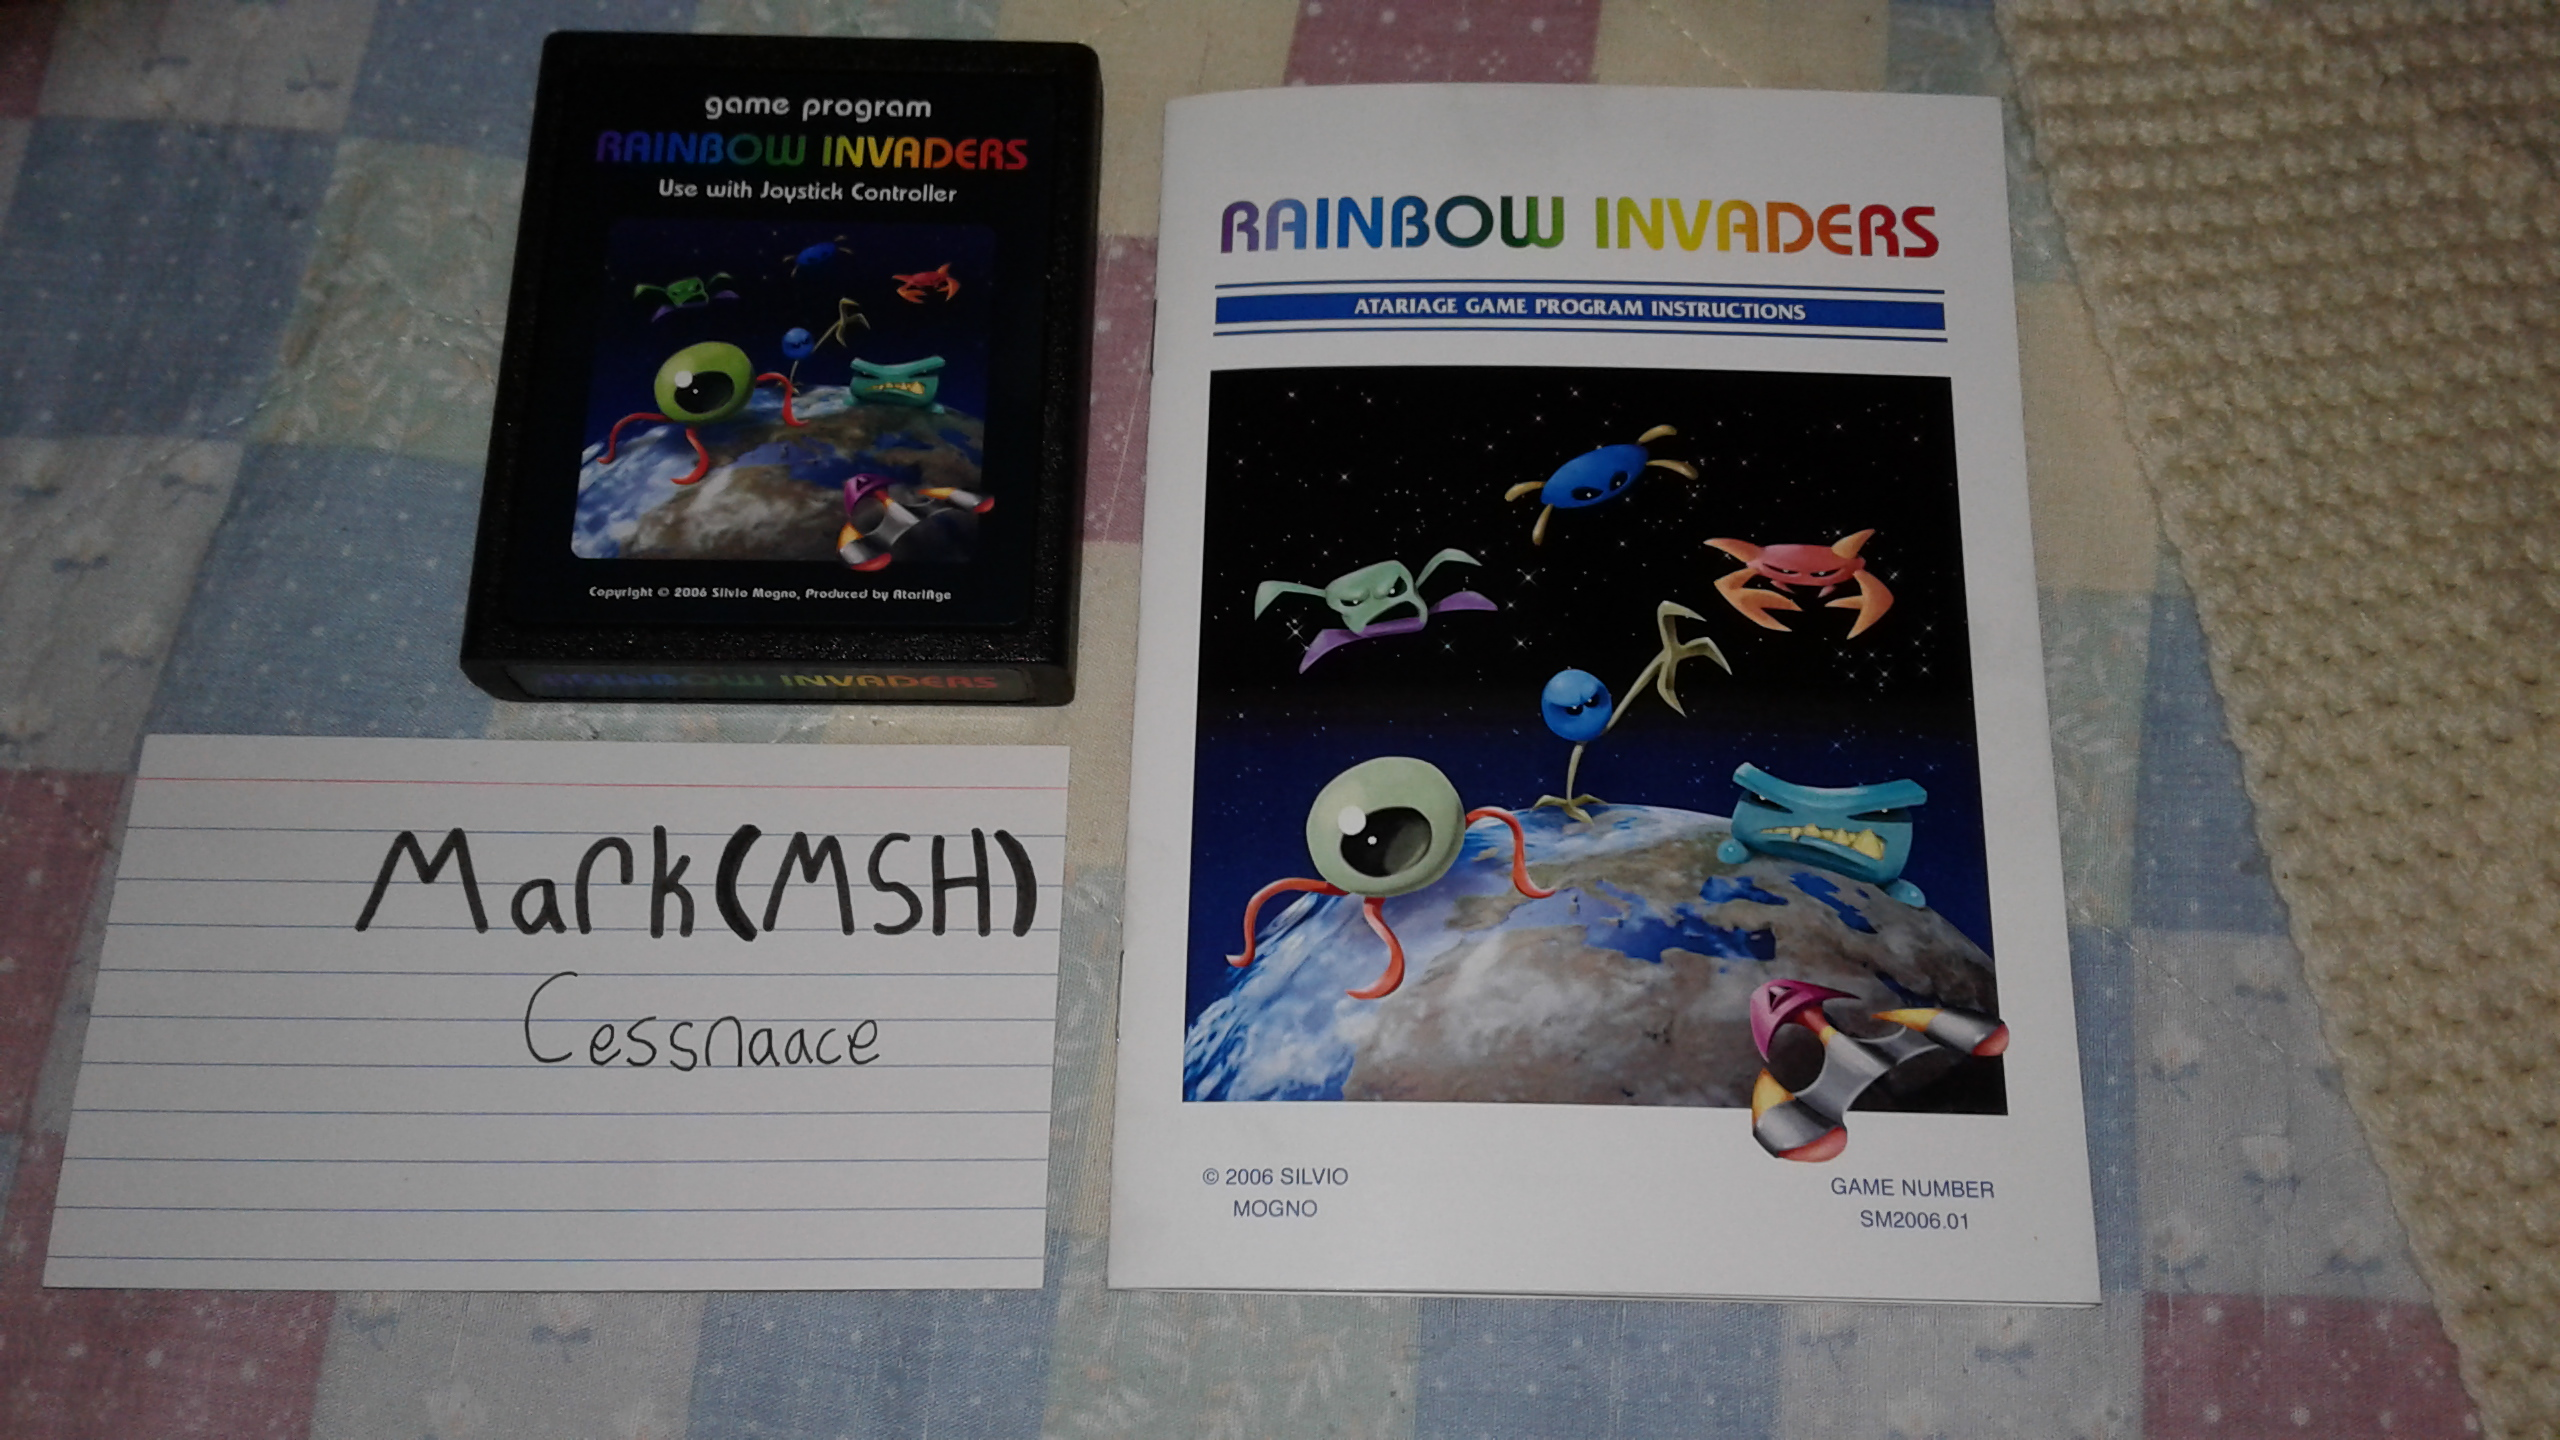 Rainbow Invaders 15,250 points